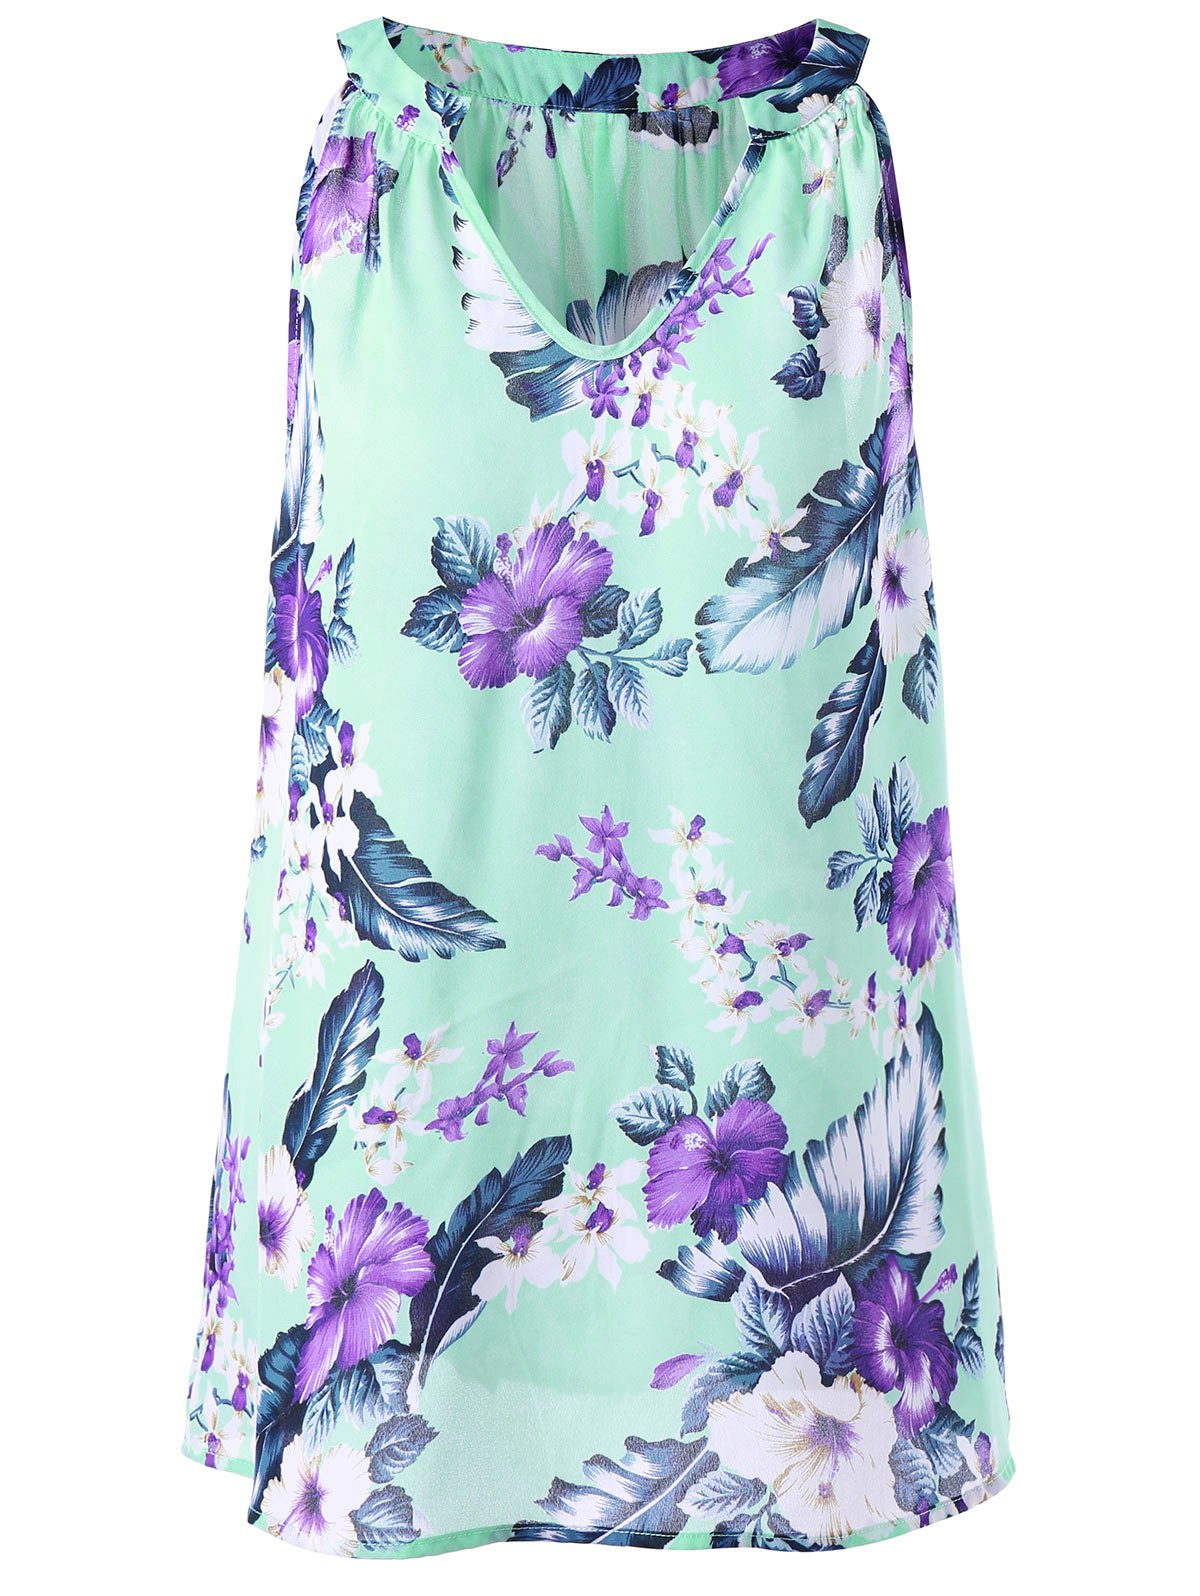 Plus Size V Neck Floral Tent BlouseWOMEN<br><br>Size: 3XL; Color: MINT; Material: Polyester; Shirt Length: Regular; Sleeve Length: Sleeveless; Collar: V-Neck; Style: Casual; Season: Summer; Pattern Type: Floral; Weight: 0.1600kg; Package Contents: 1 x Blouse;